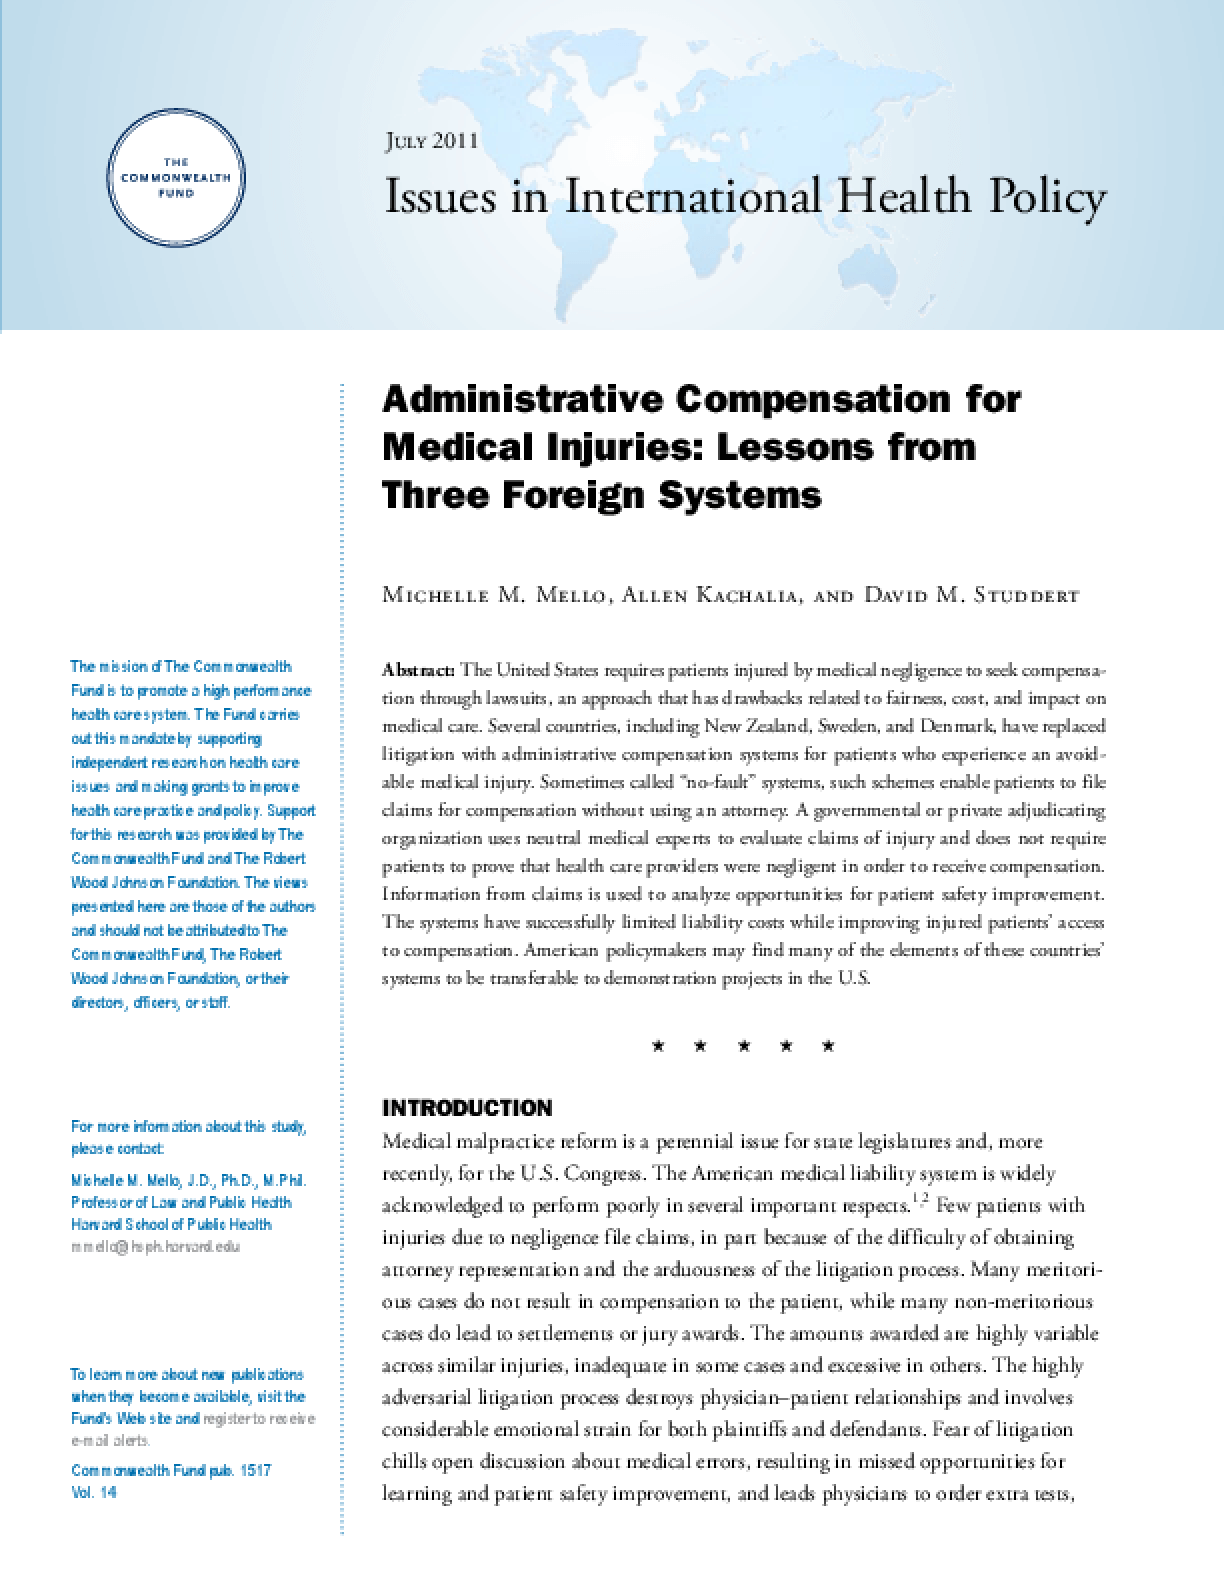 Administrative Compensation for Medical Injuries: Lessons From Three Foreign Systems